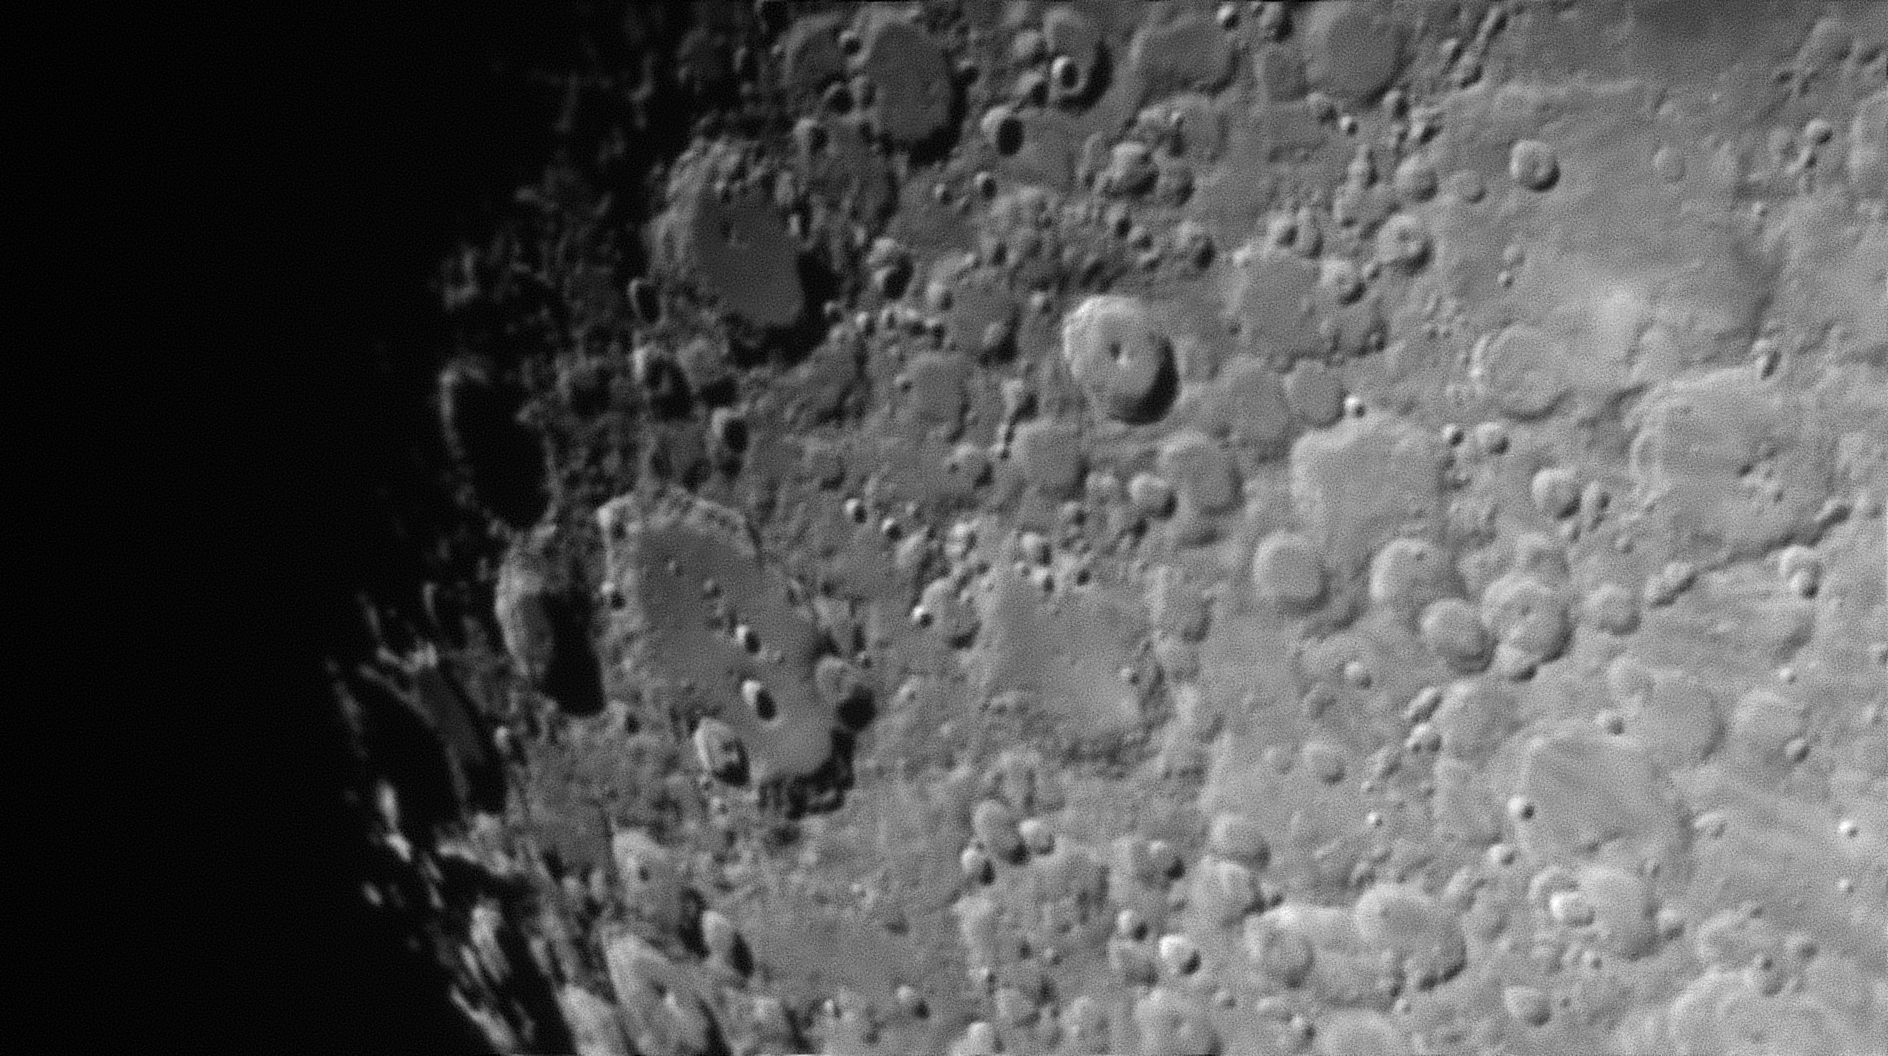 2021-02-21-2104_7-L-Moon_lapl5_ap549_AS_clavius.png.1c009c7734e667b02d6aabace10fa4f8.png